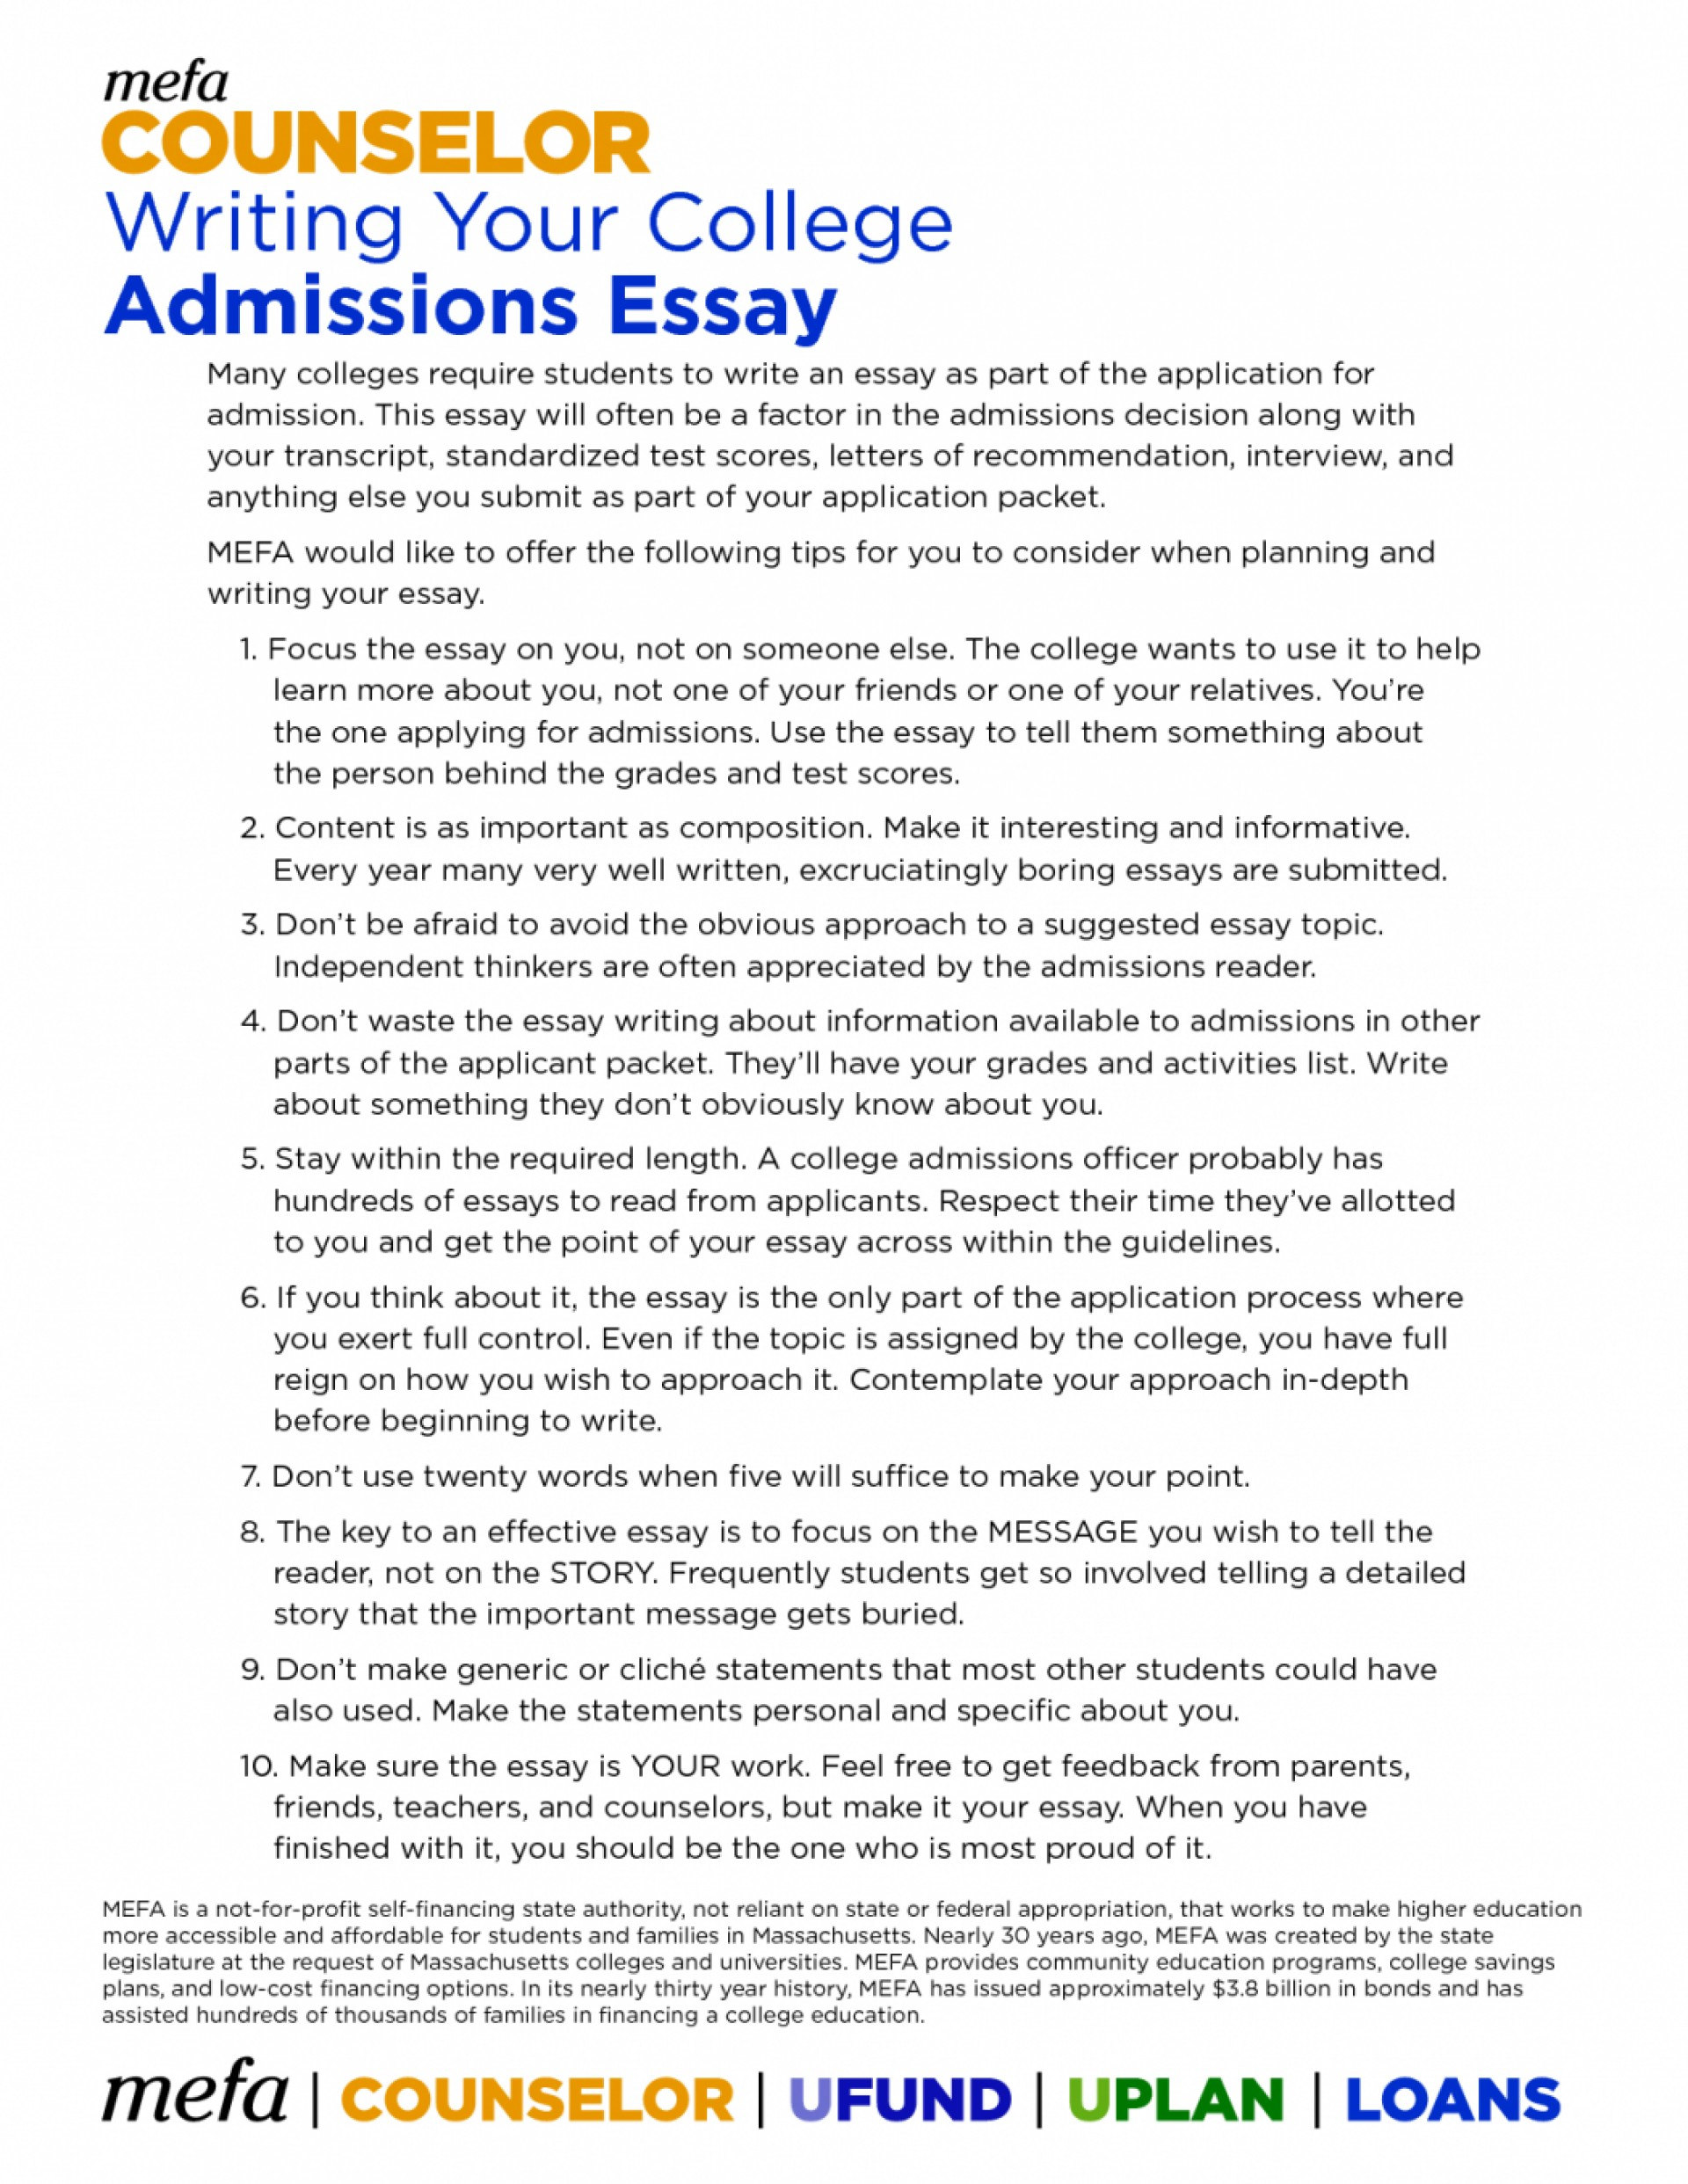 004 Essay Example Writing Custom 2wolvescentervt Help Write My For Free Online Application College Successful Sample Admission L To Remarkable Research Paper Me 1920